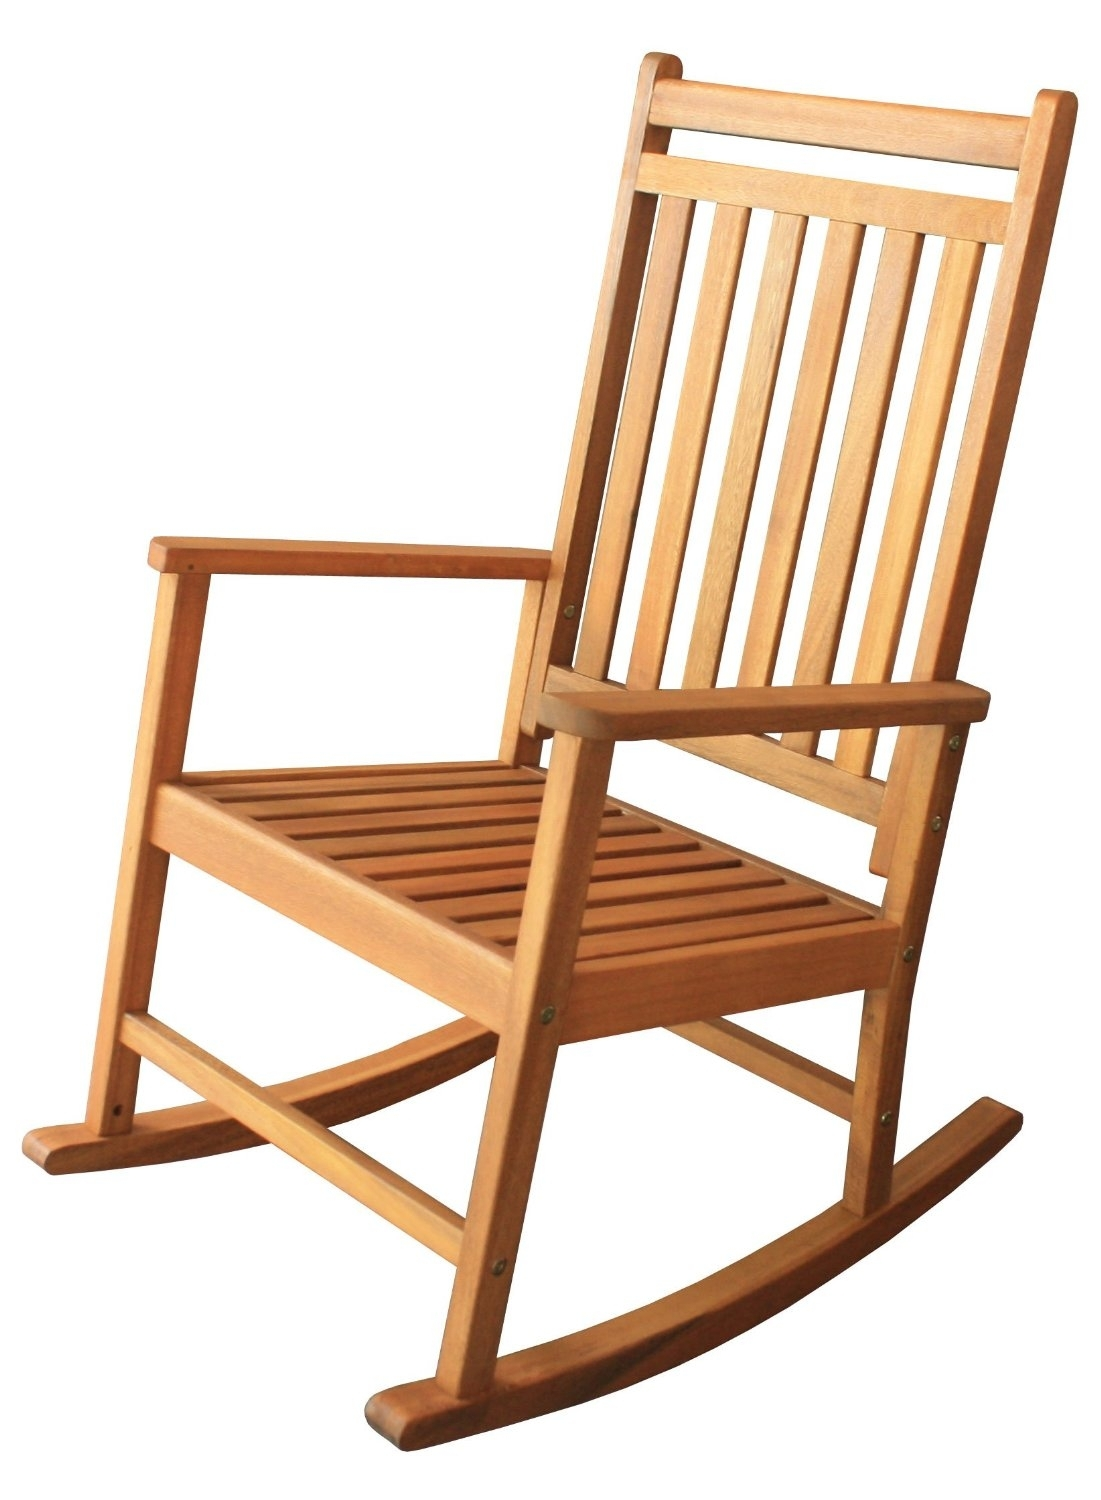 Inspiration about Wood Rocking Chair Images – Wood Rocking Chair Buying Considerations Throughout Rocking Chair Outdoor Wooden (#13 of 15)